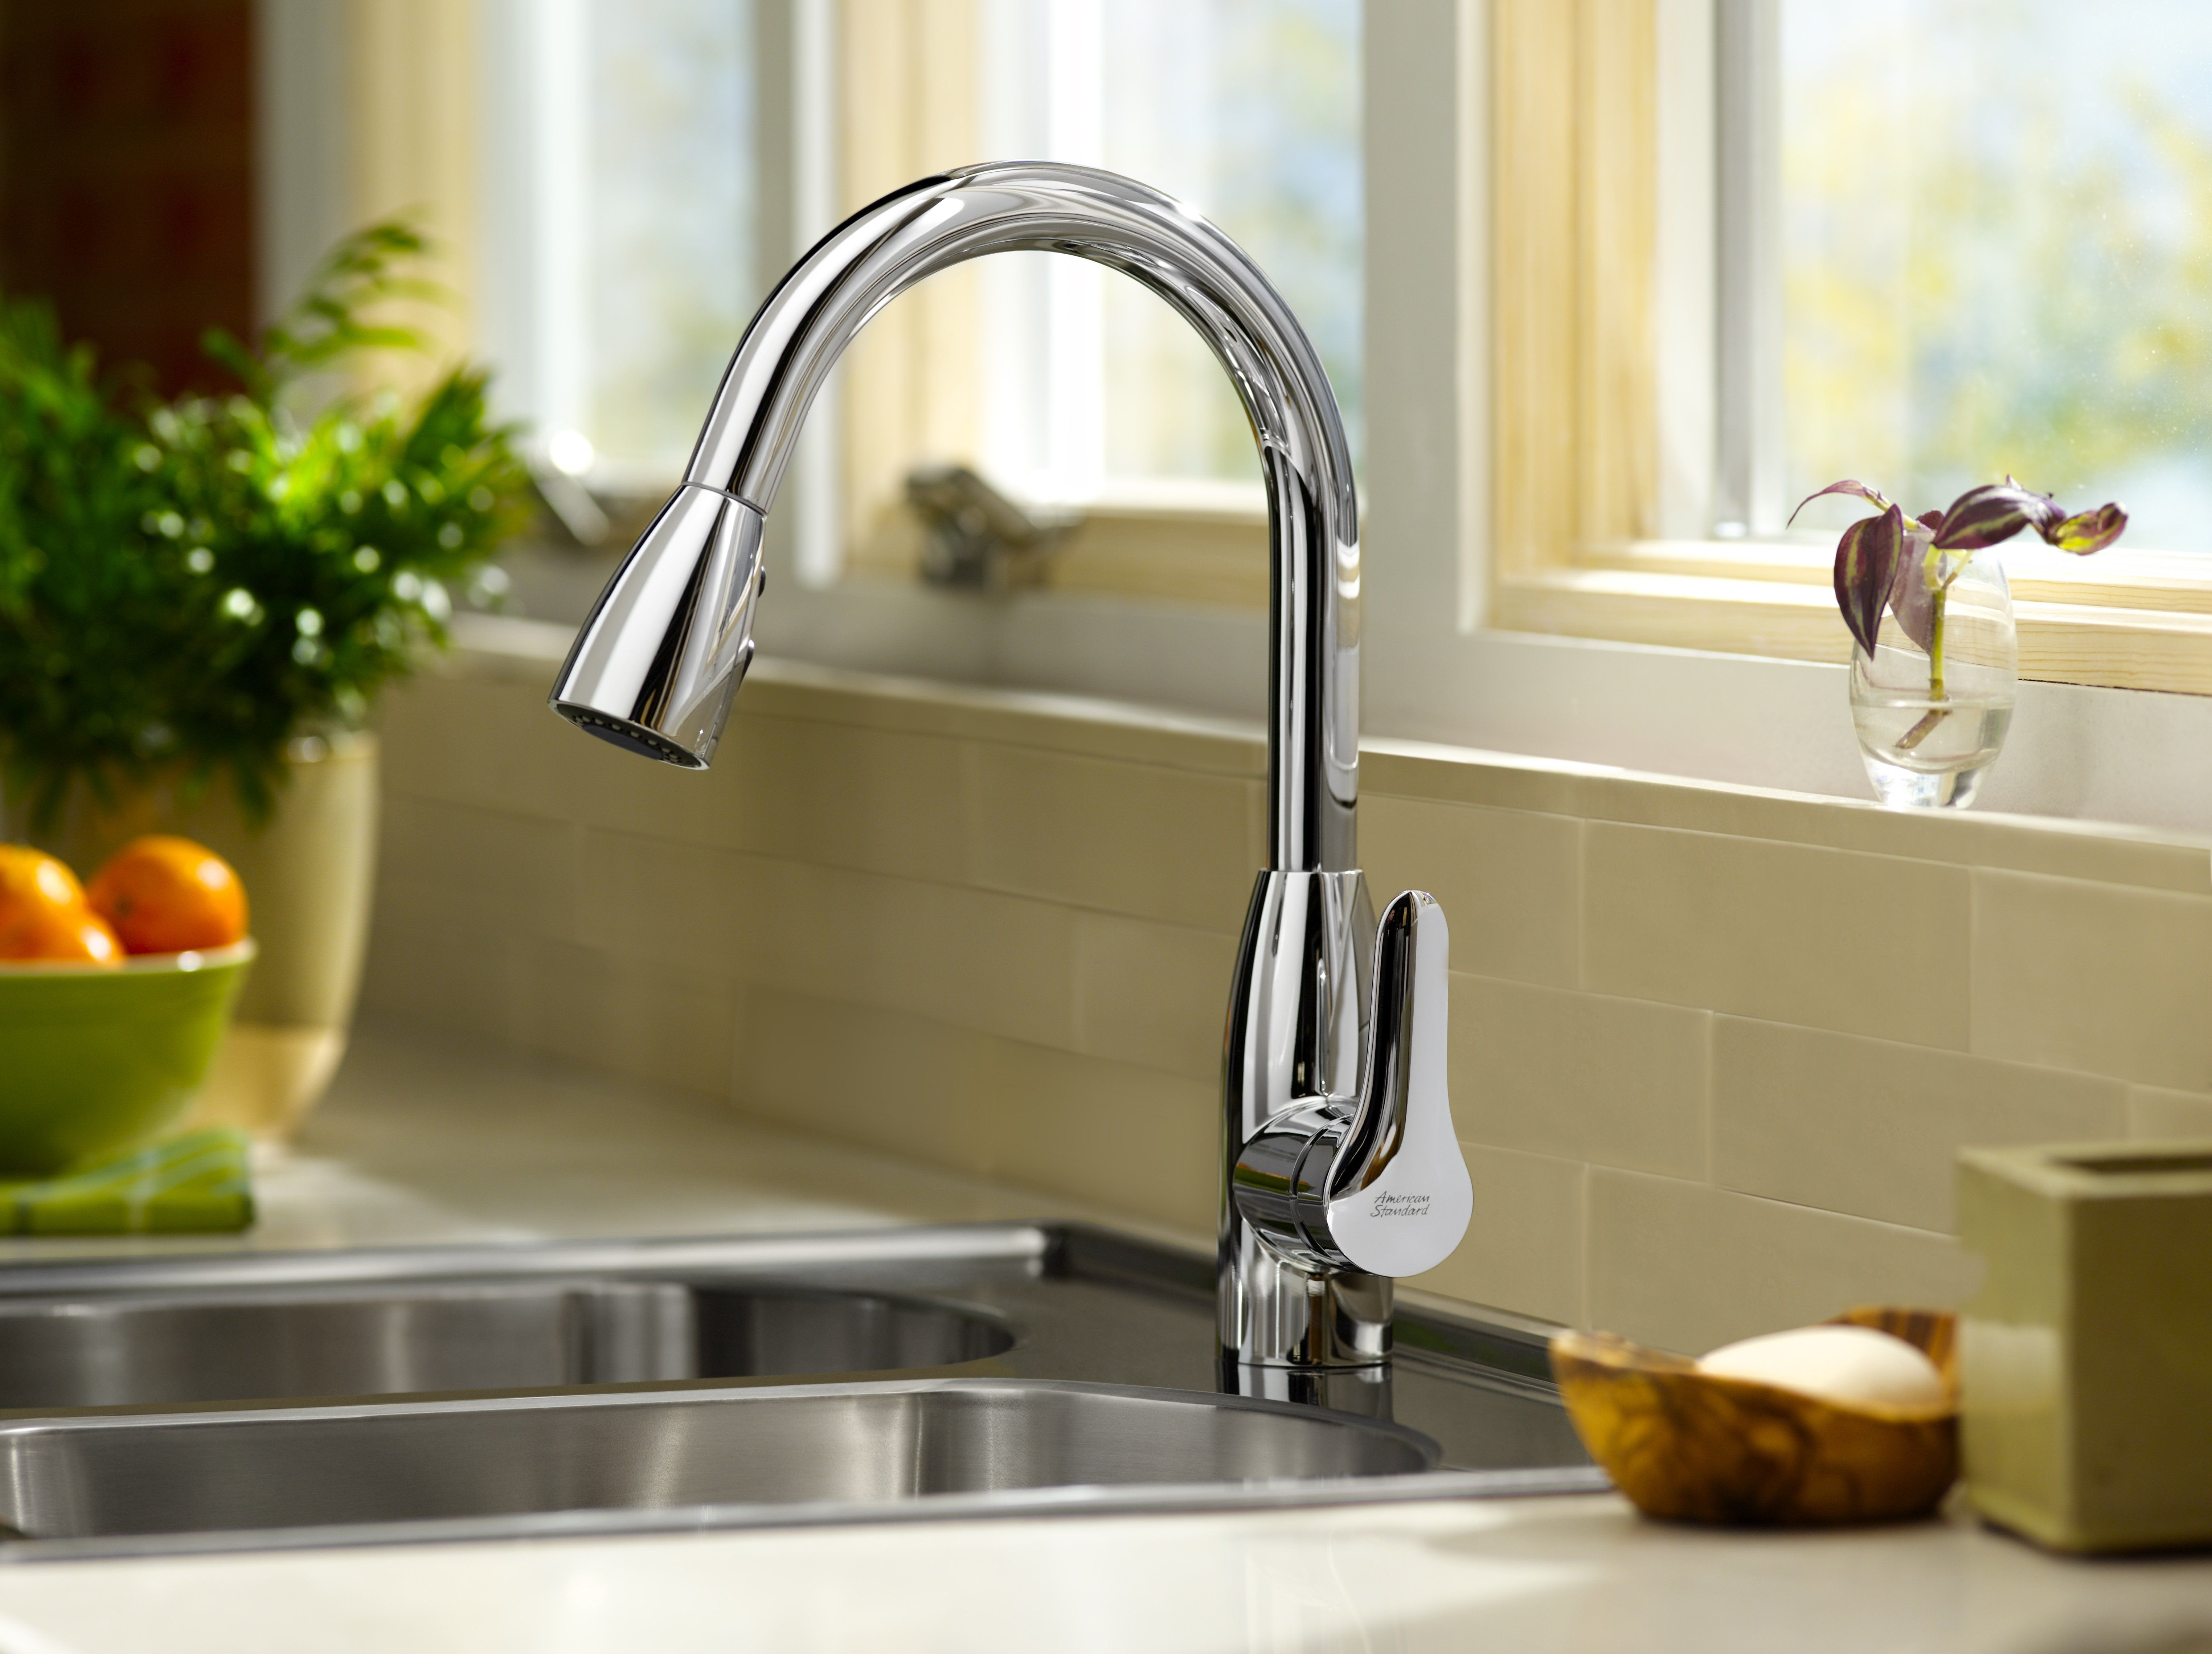 Selecting Matching Kitchen Sinks And Faucets Styles Designalls Kitchen Faucet Design Modern Kitchen Faucet Faucet Design